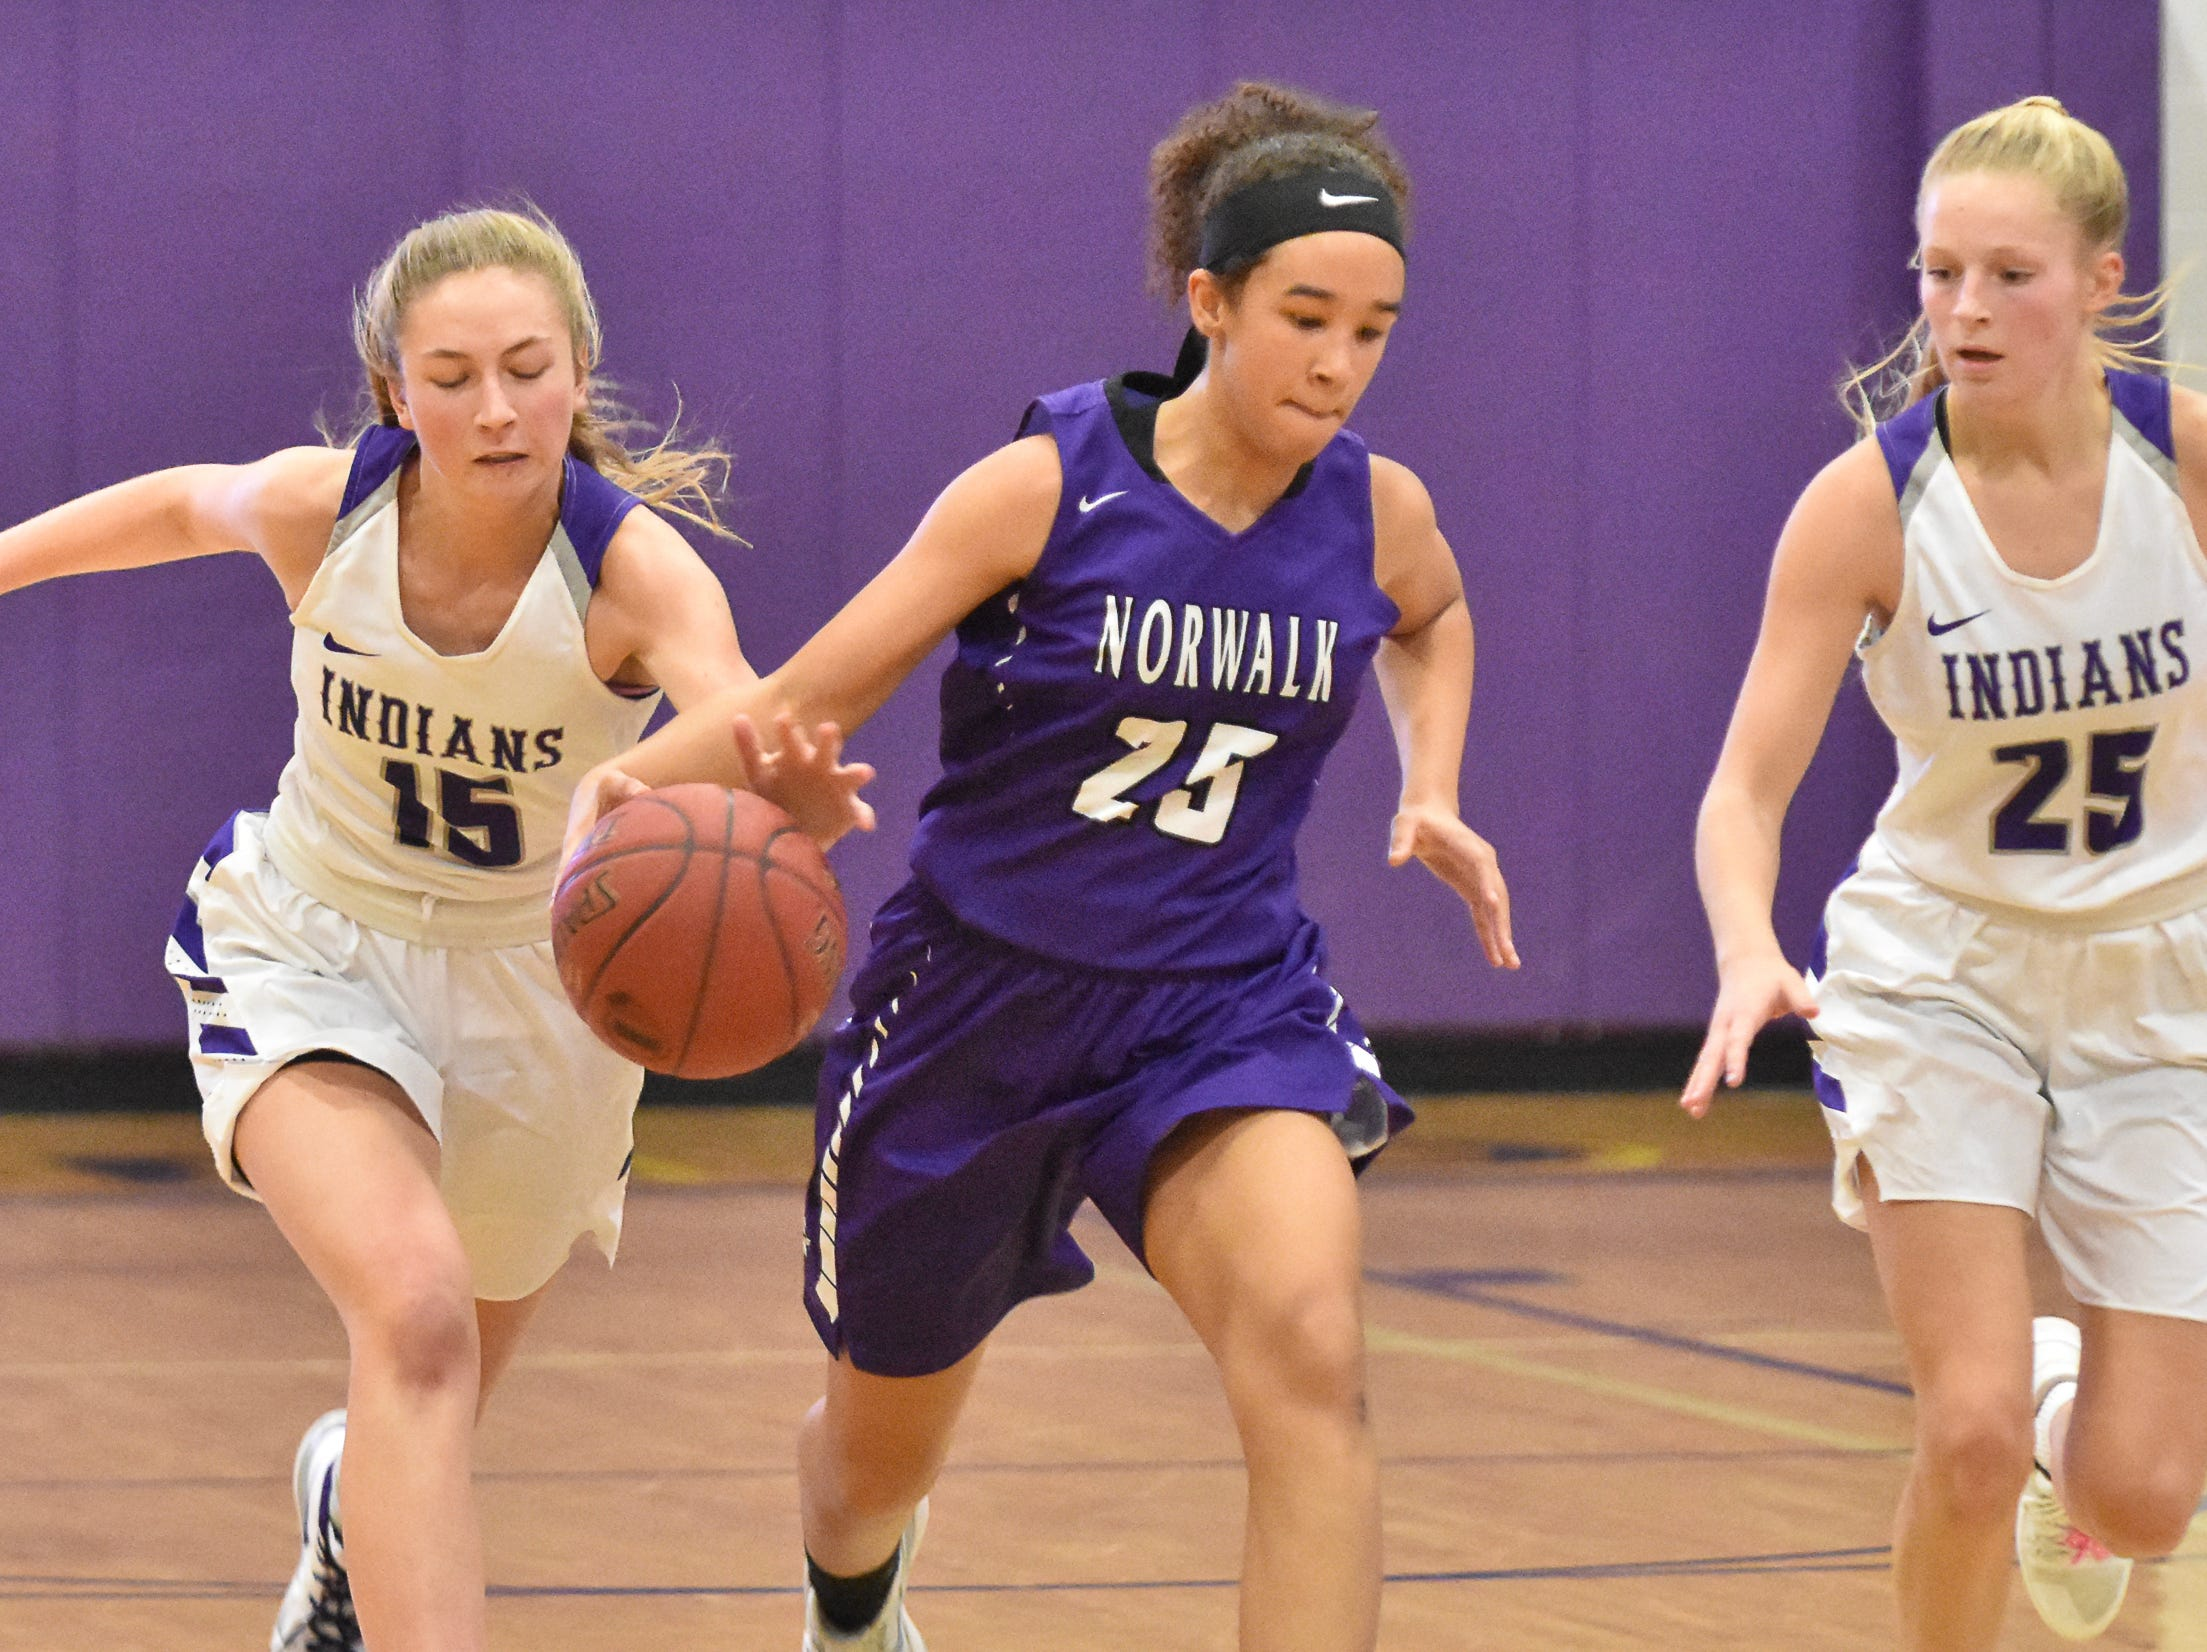 Norwalk's Olivia Johnson heads down the court with Indianola's Alley May and Allison Coffey in pursuit. The Indianola girls' basketball team picked up their first win of the season with a 57-34 home victory over Norwalk on Nov. 30, 2018.